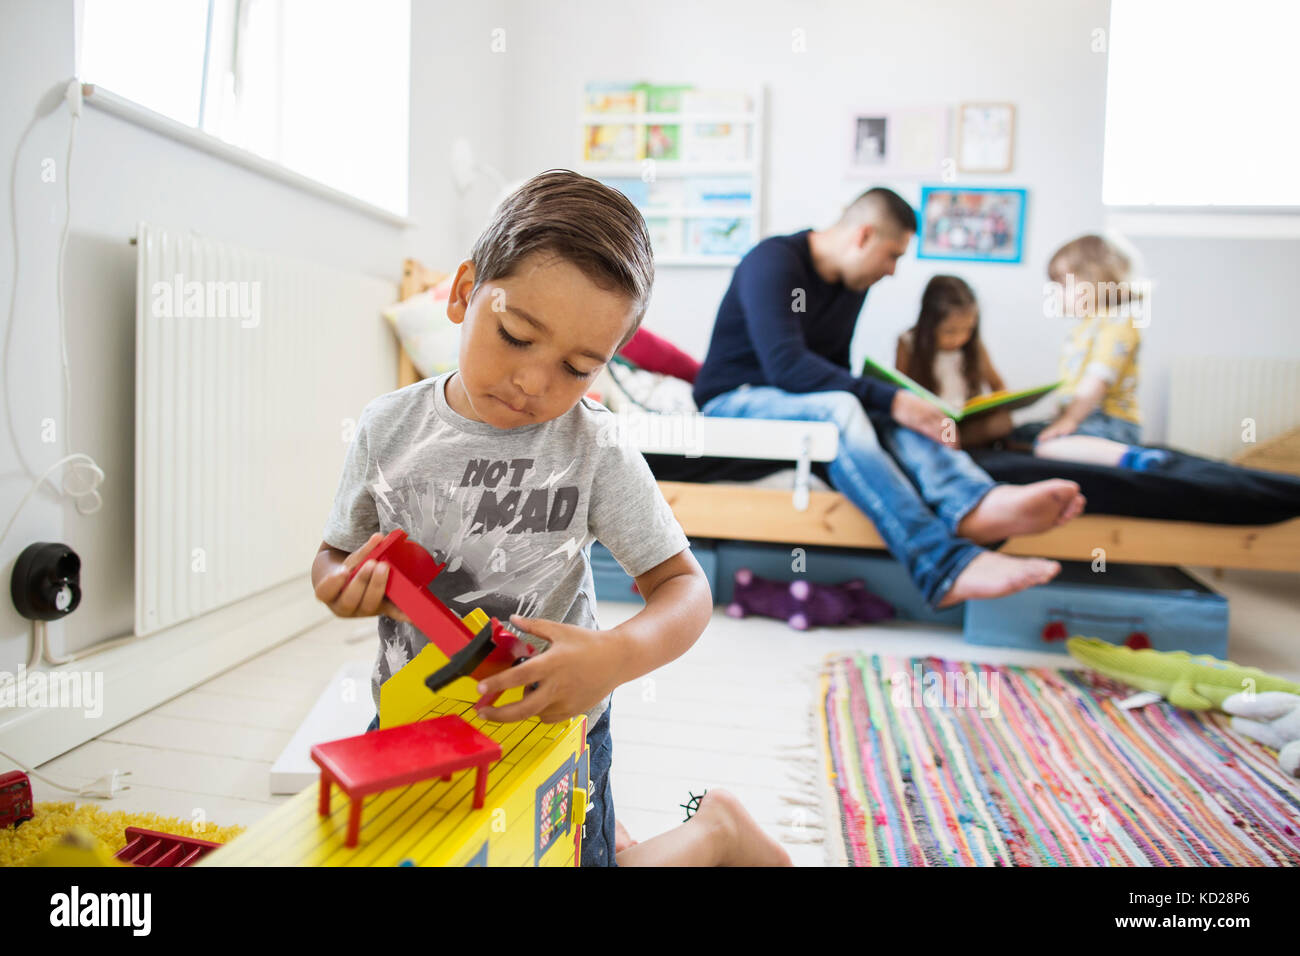 Father and children (2-3, 6-7) playing in room - Stock Image